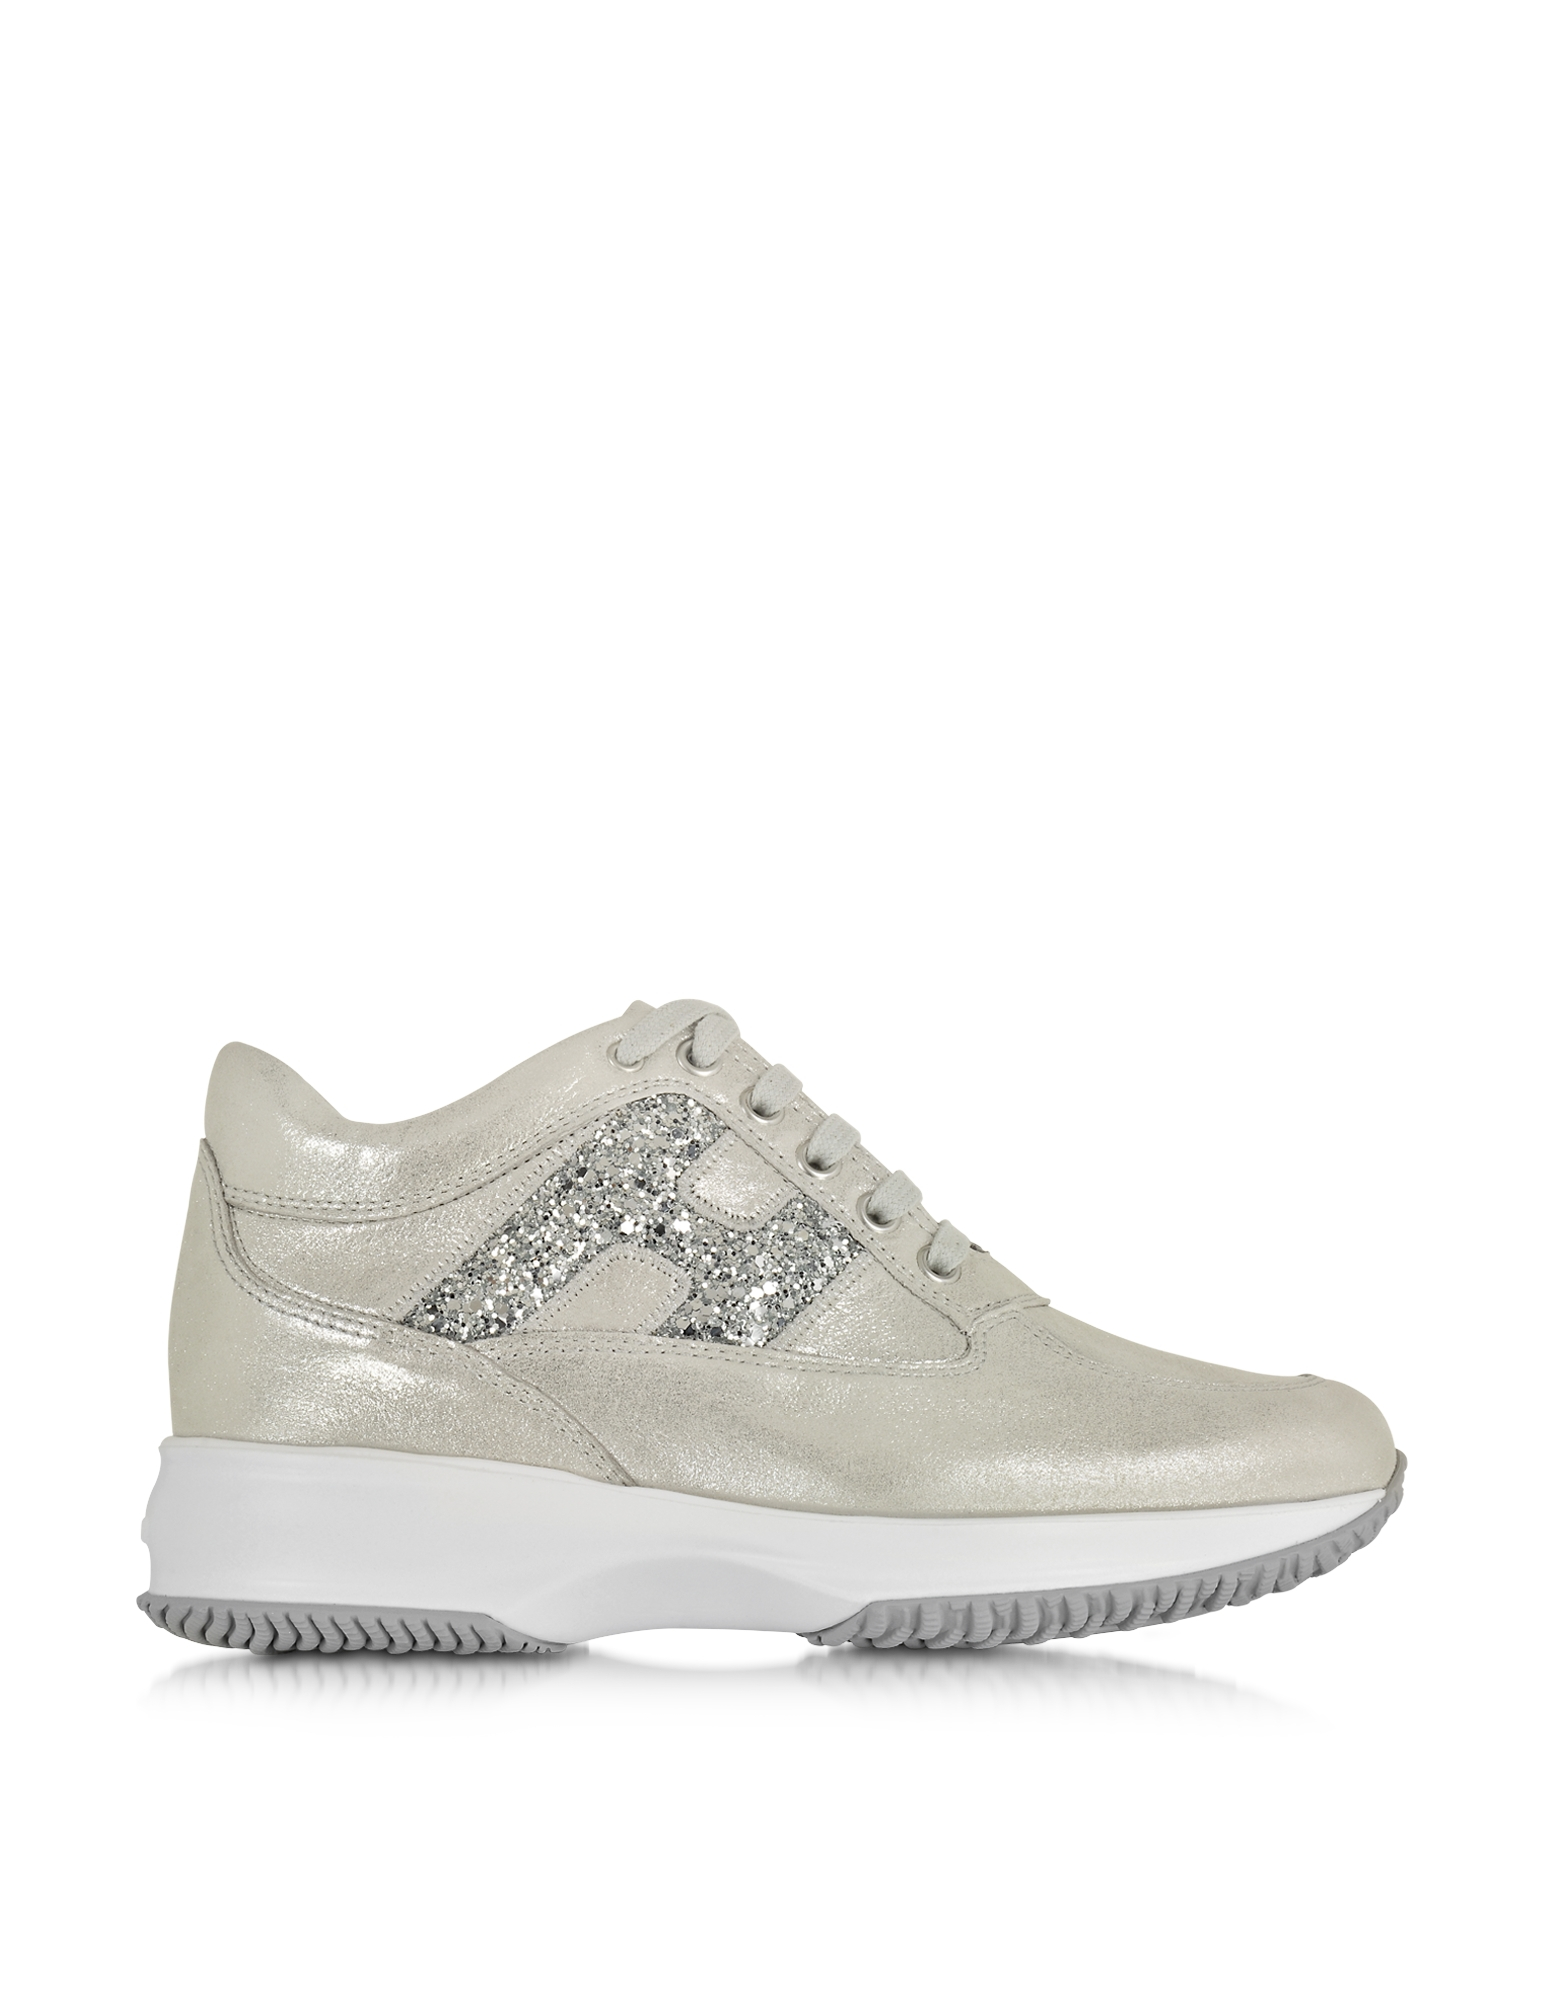 Forzieri Hogan Hogan Silver Suede And Glitter Wedge Sneaker In Metallic Lyst